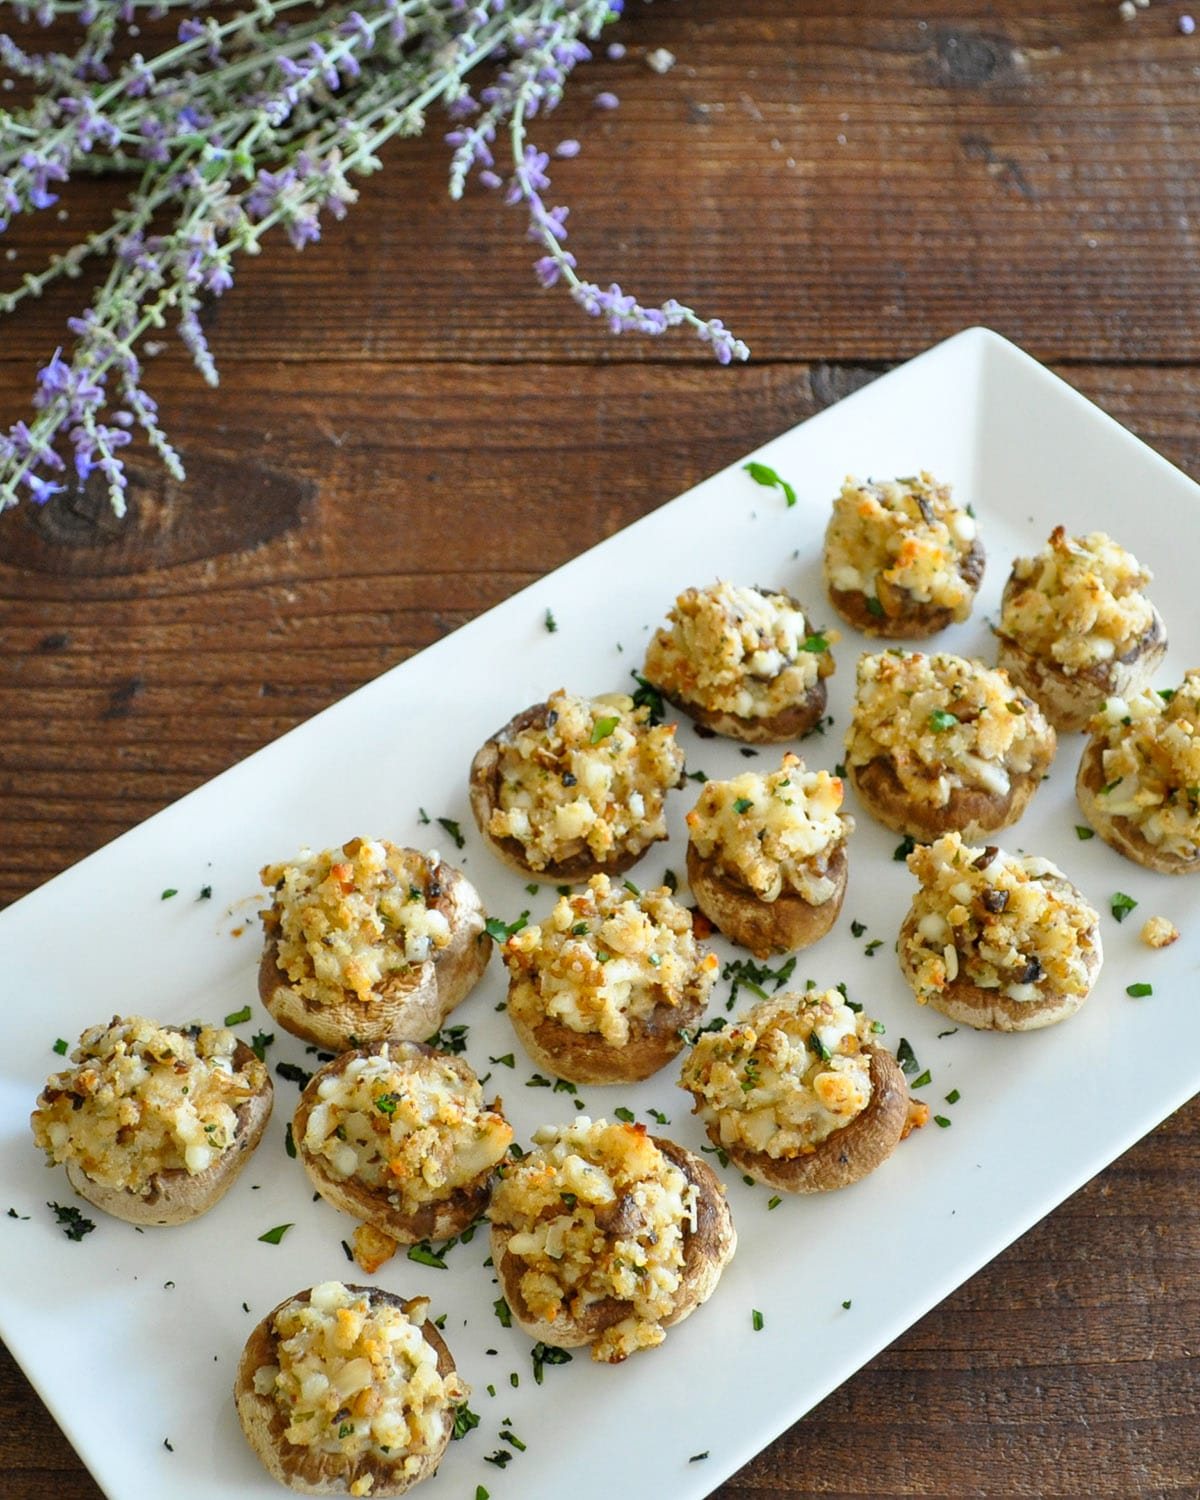 stuffed mushrooms on a white platter next to a bundle of lavender